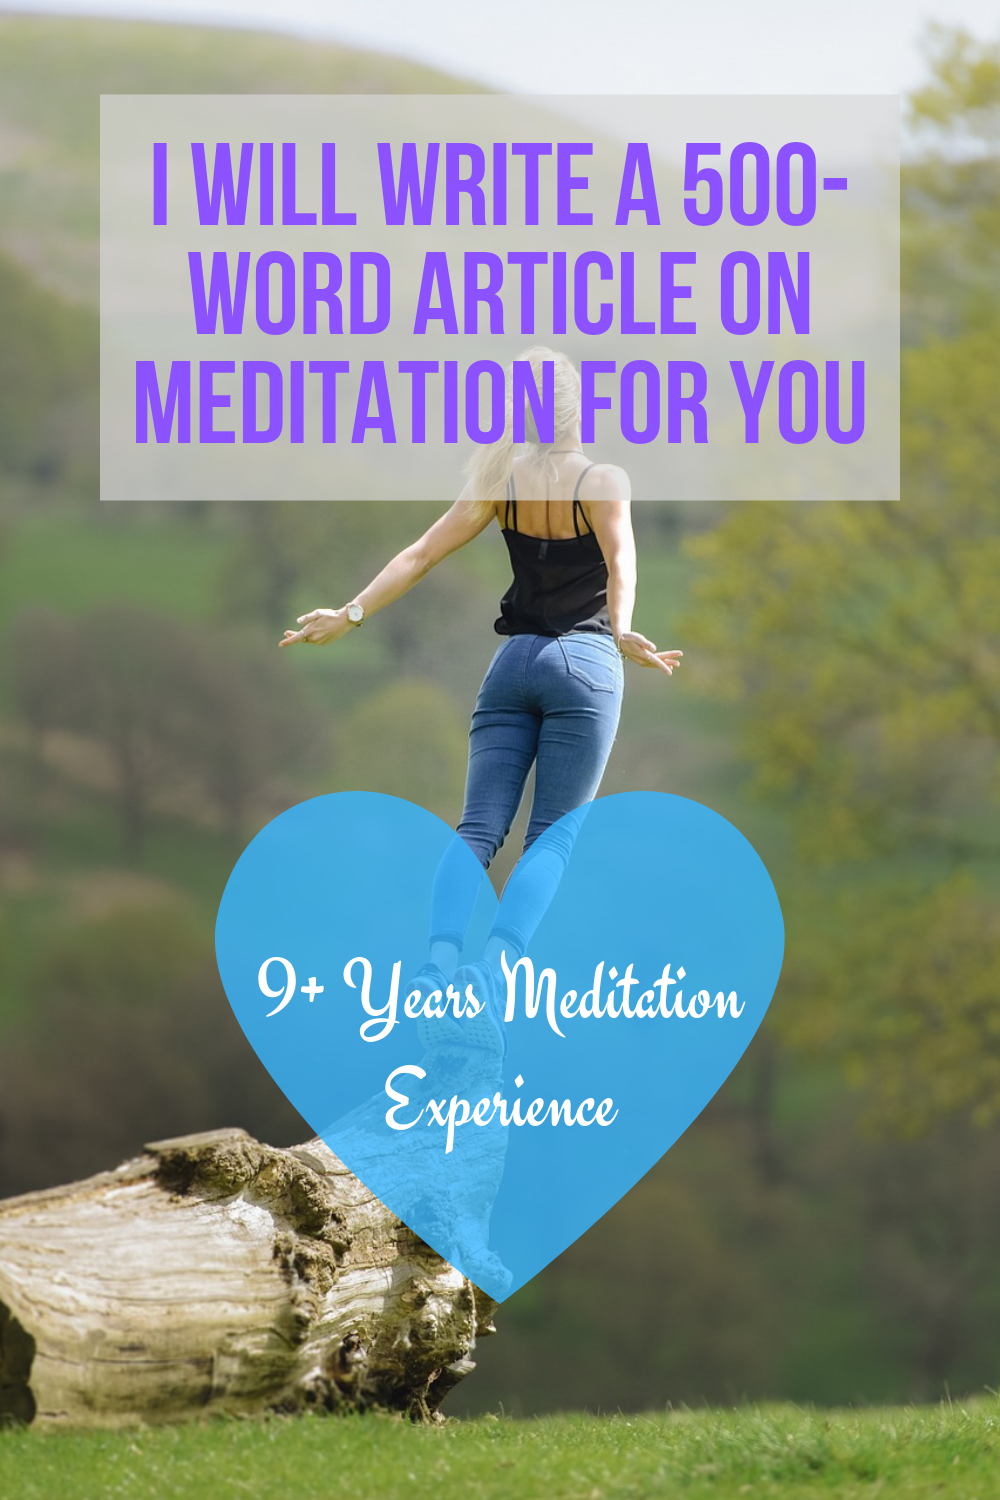 I Will Manually Write You Superb 500 Word Articles For Your Blog In The Meditation Niche Meditation Fiverr Blog Yoga For You Meditation Words